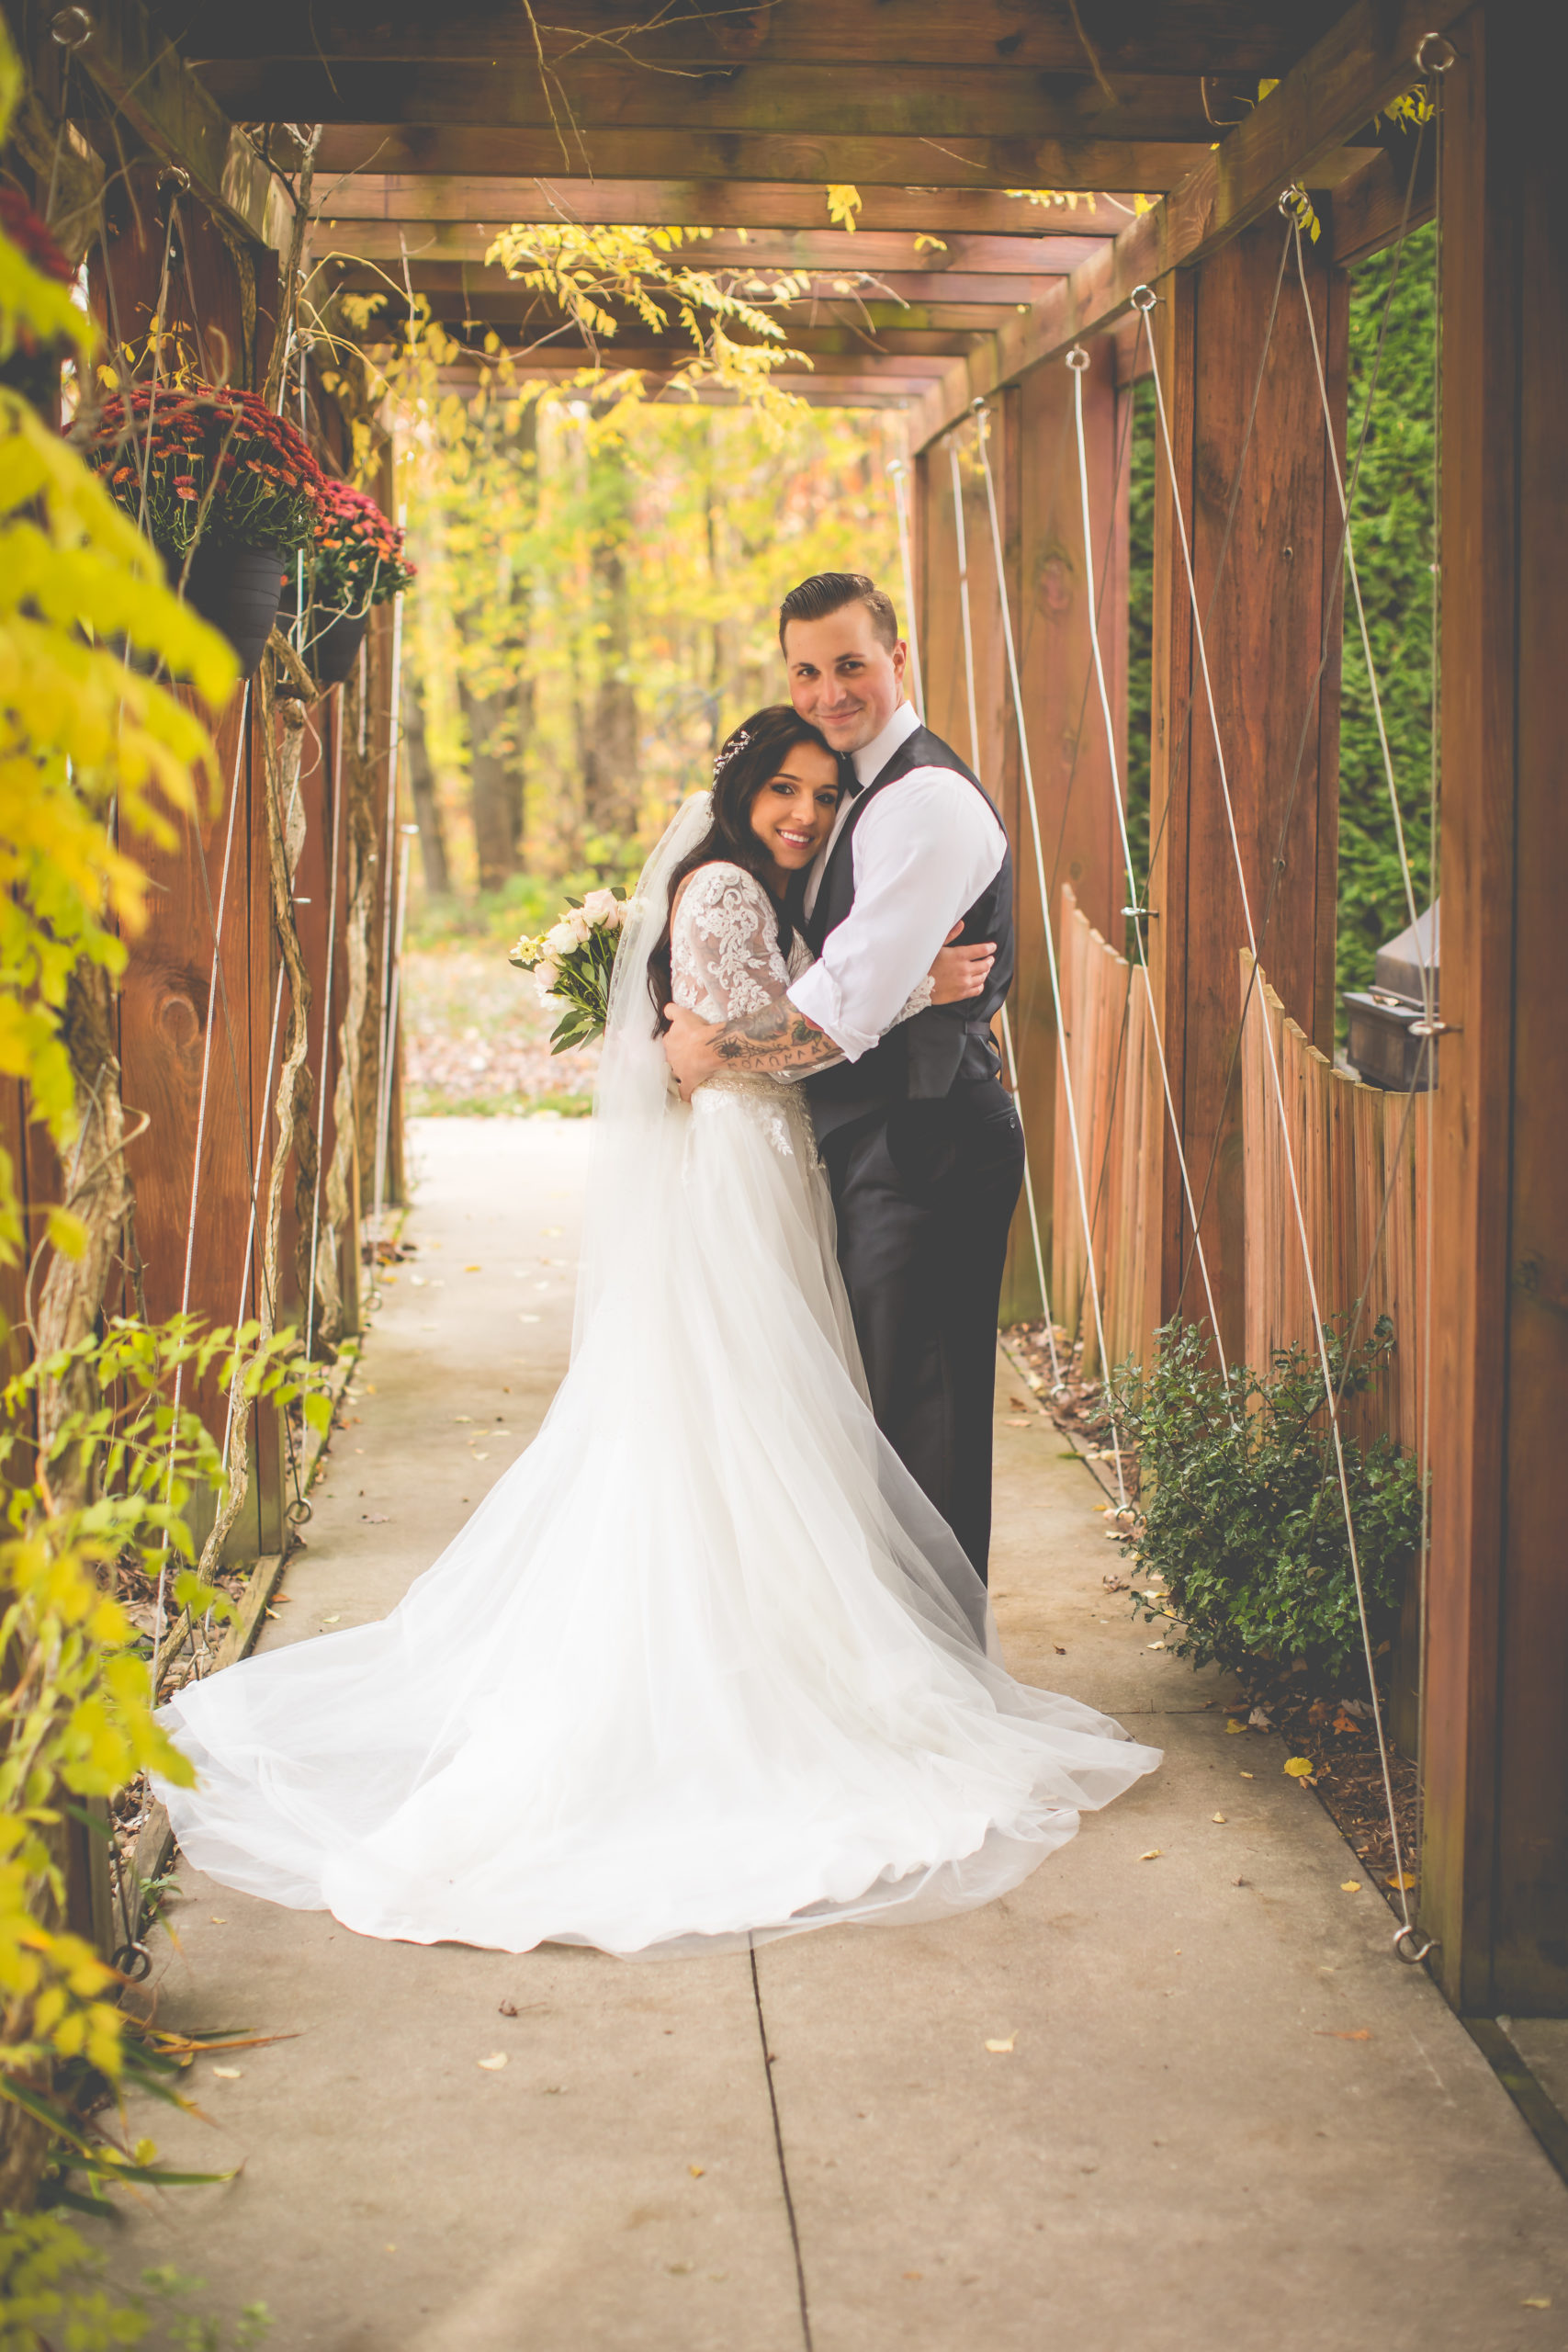 Bride and groom standing on a walkway outside surrounded by lush fall foliage